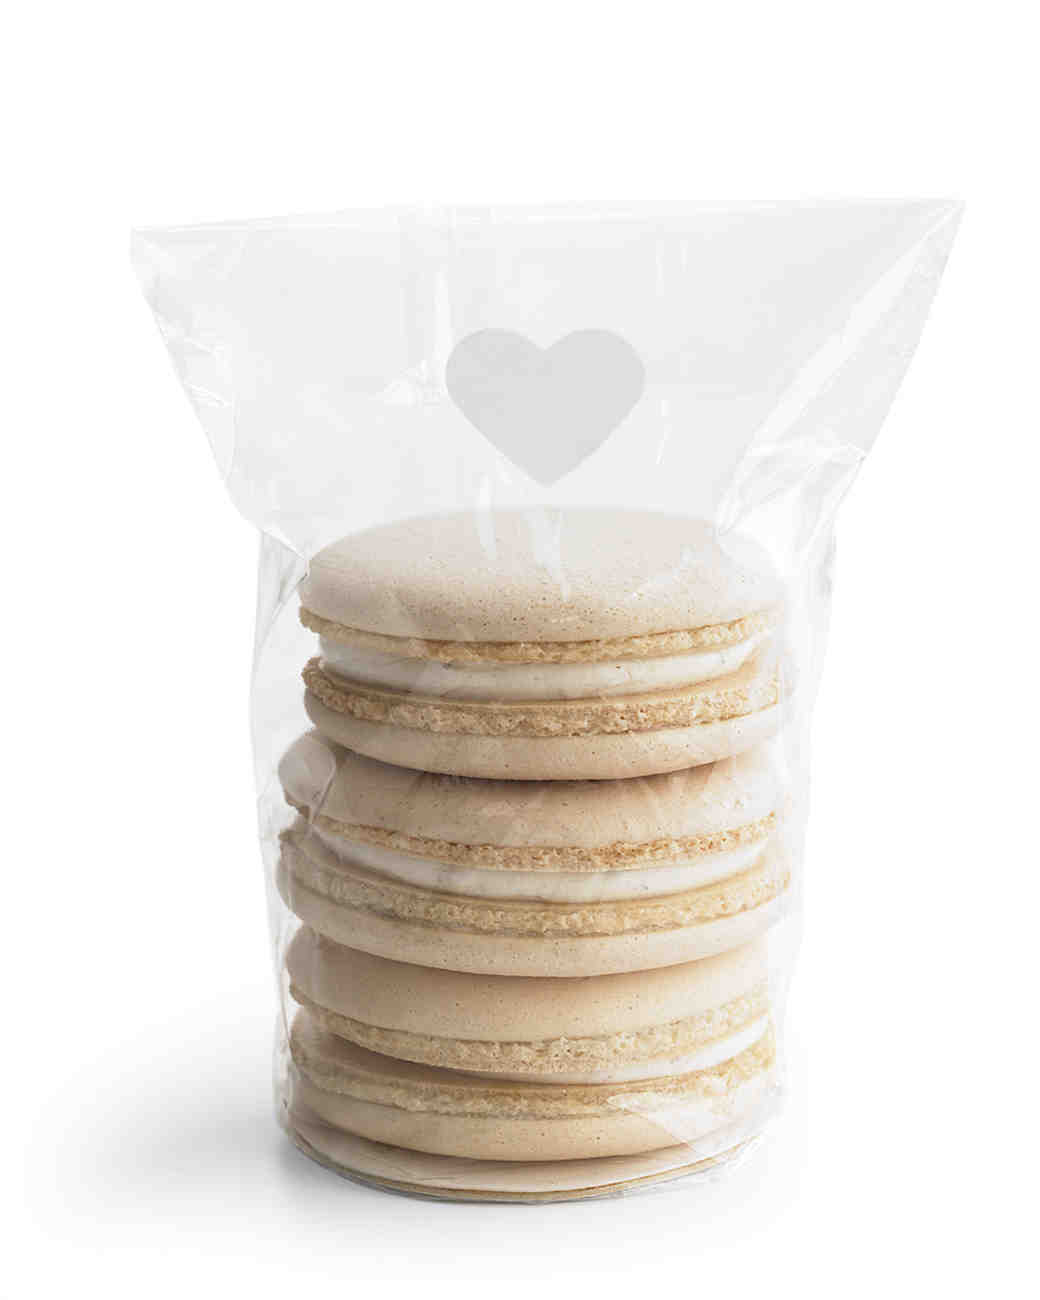 diy-bridal-shower-favors-macaron-cookie-bag-w10-0515.jpg